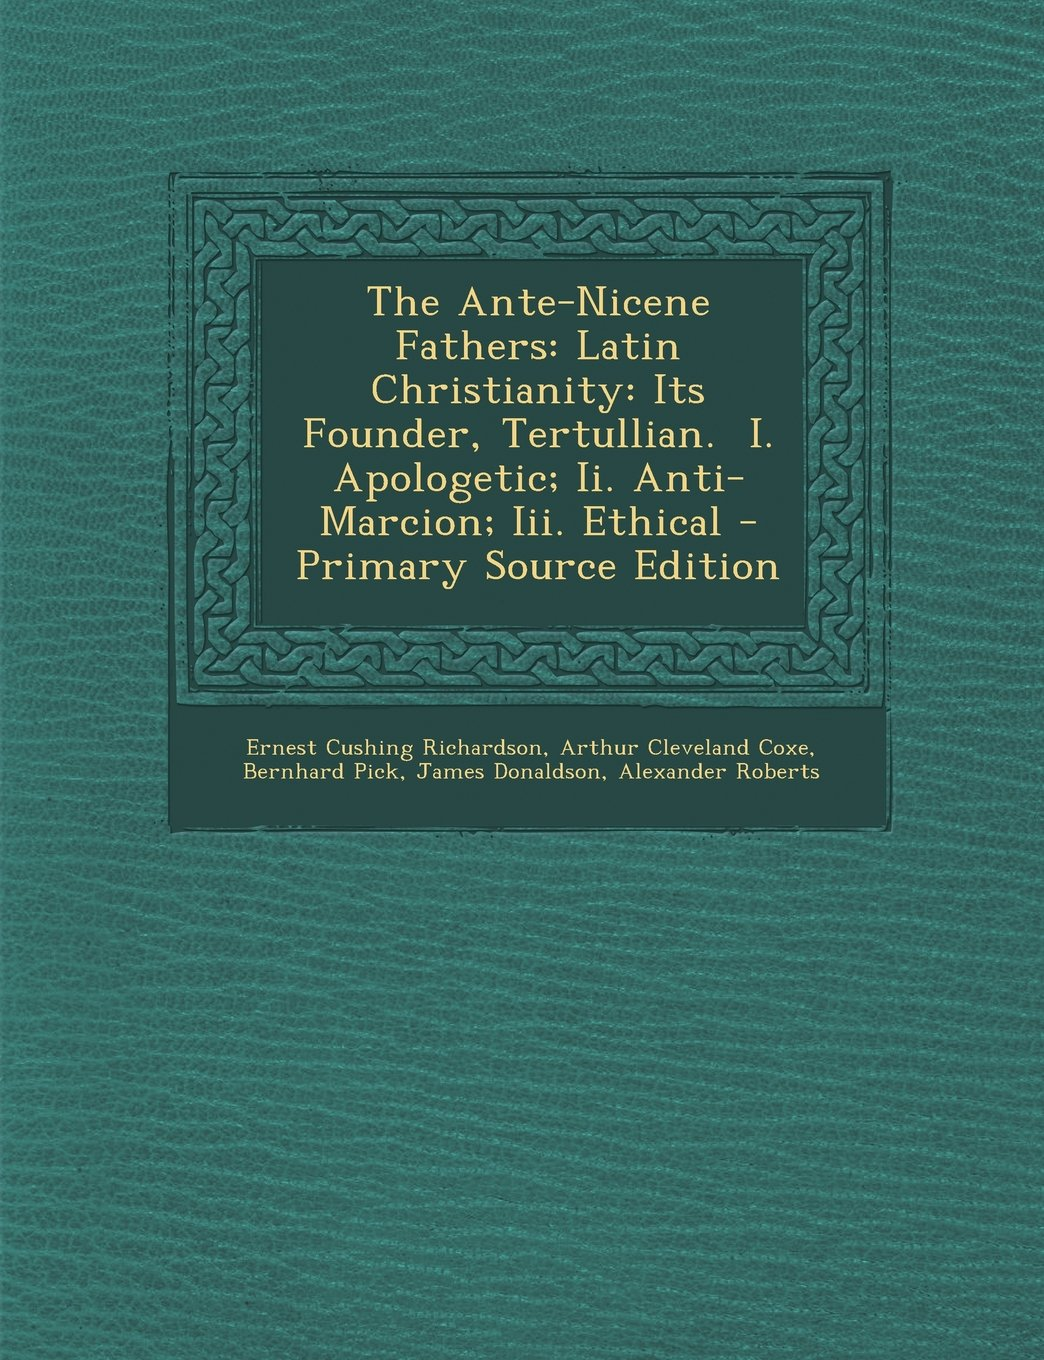 The Ante-Nicene Fathers: Latin Christianity: Its Founder, Tertullian.  I. Apologetic; Ii. Anti-Marcion; Iii. Ethical pdf